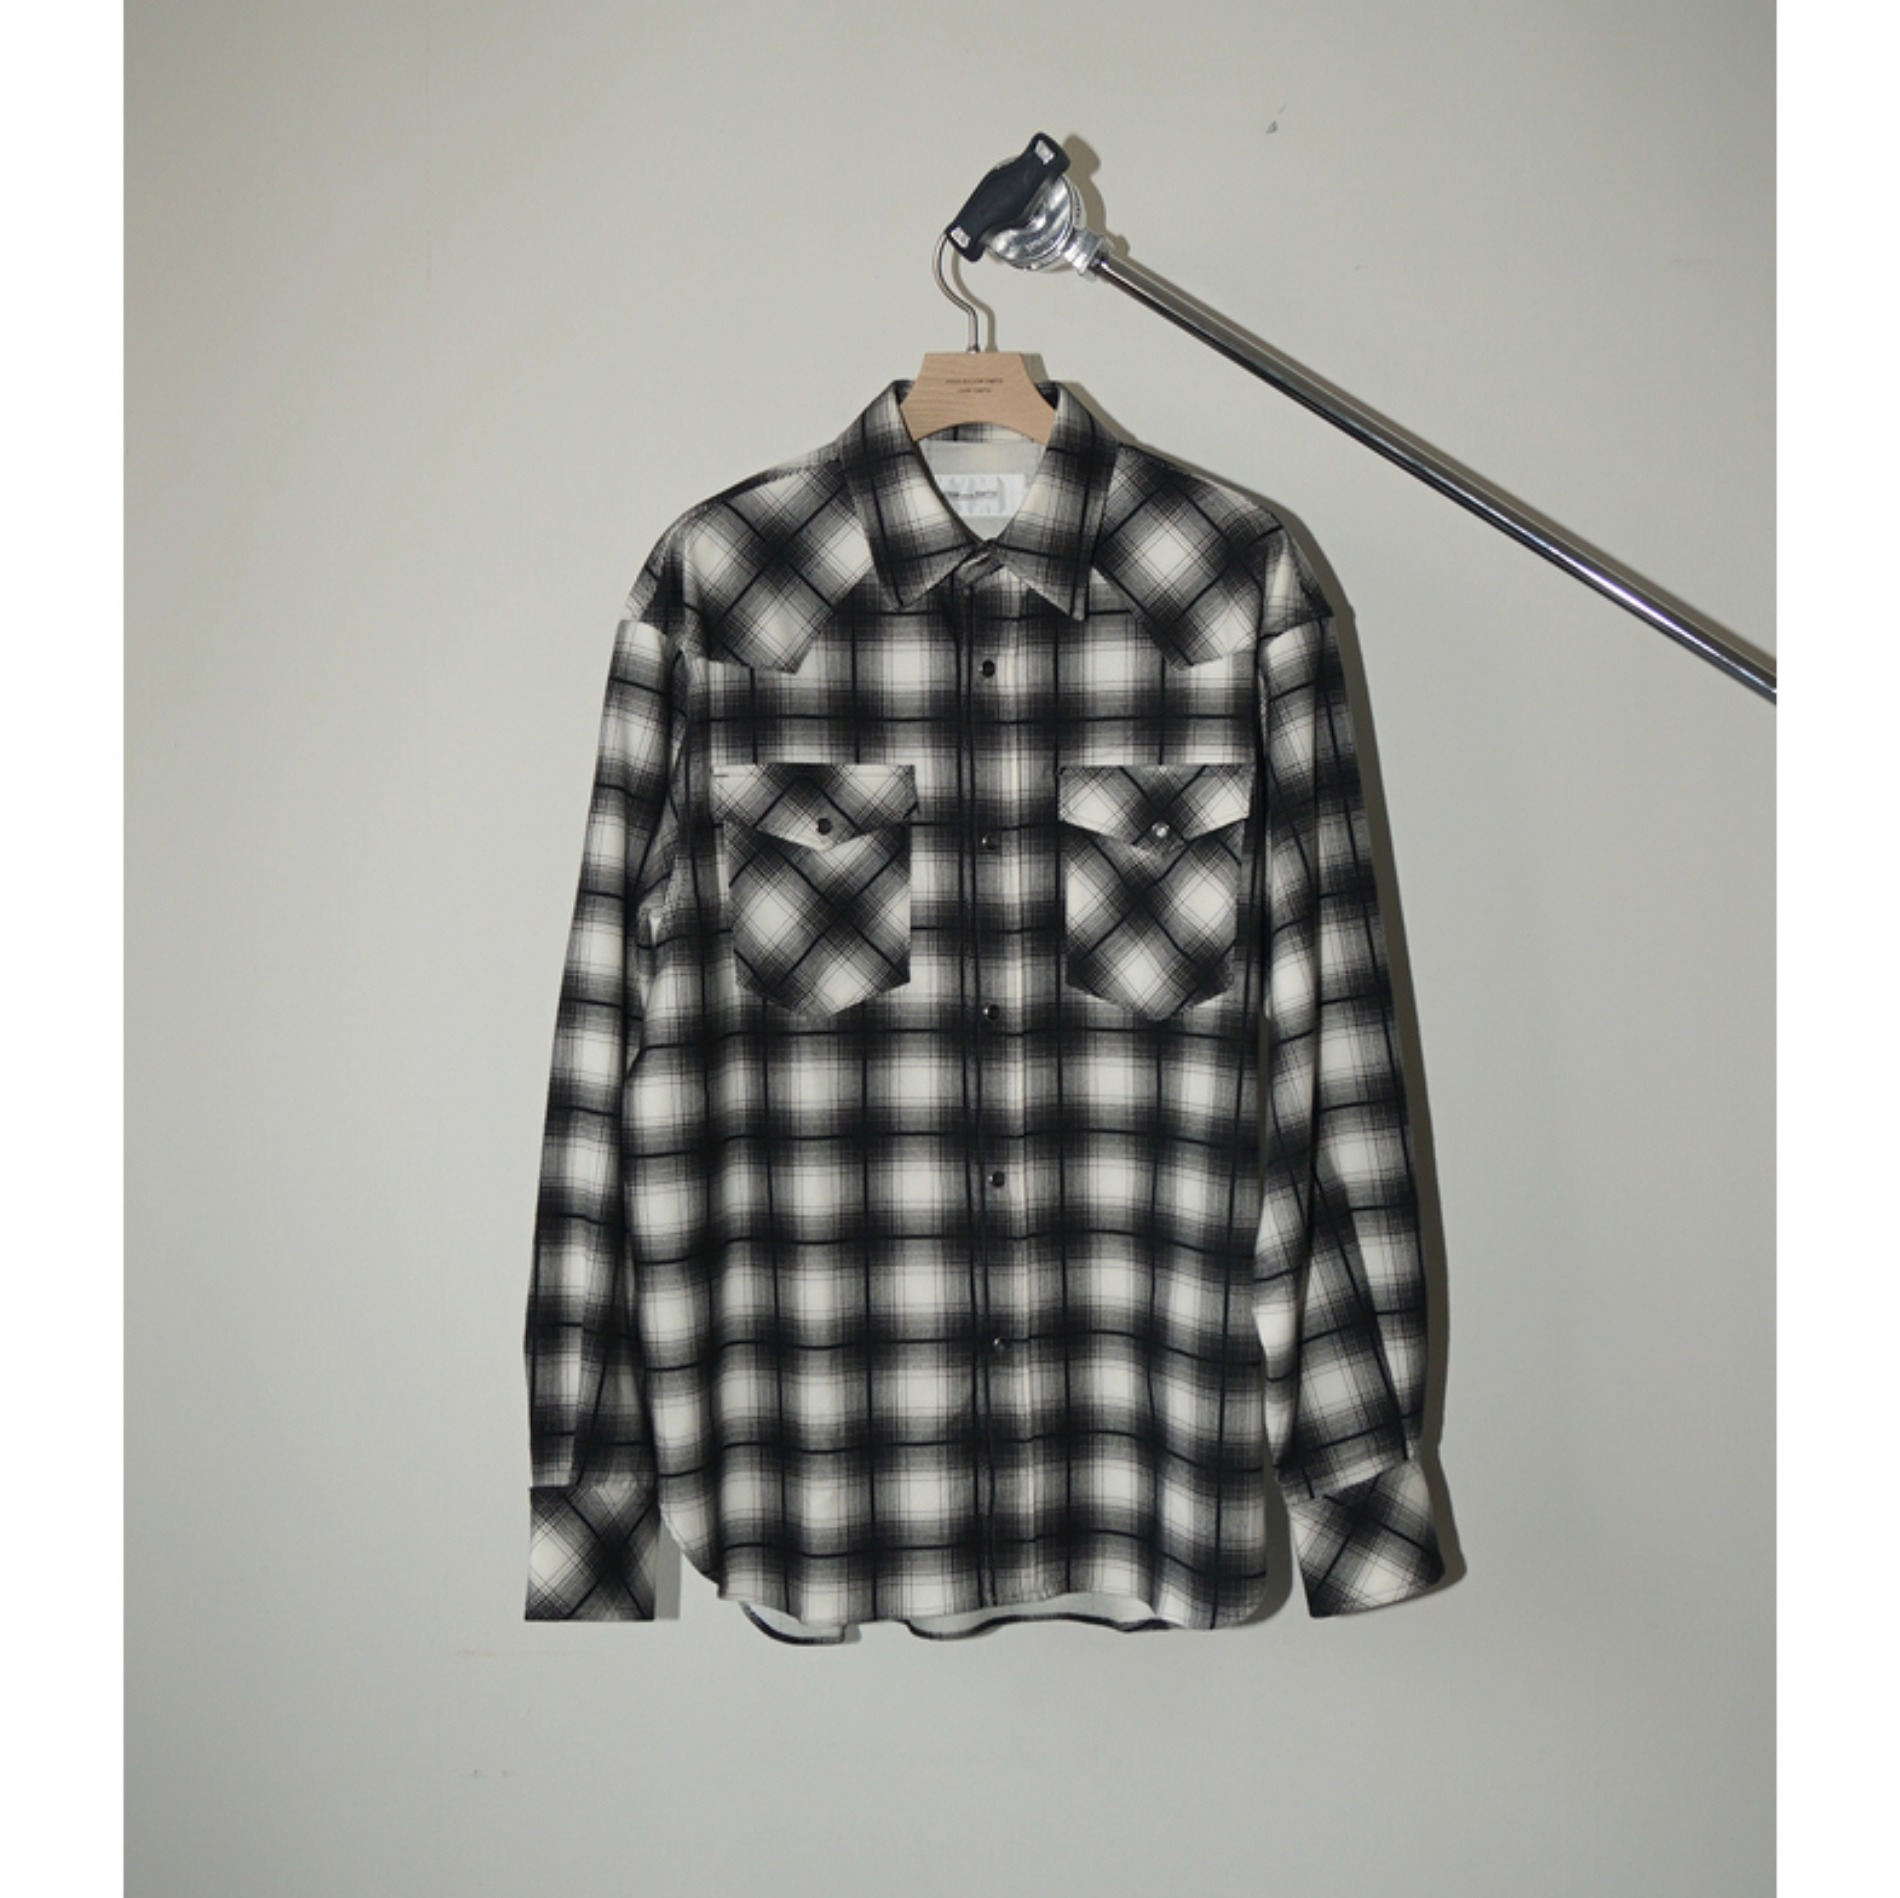 AW20 JOHN MASON SMITH WESTERN SHIRT BLACK CHECK